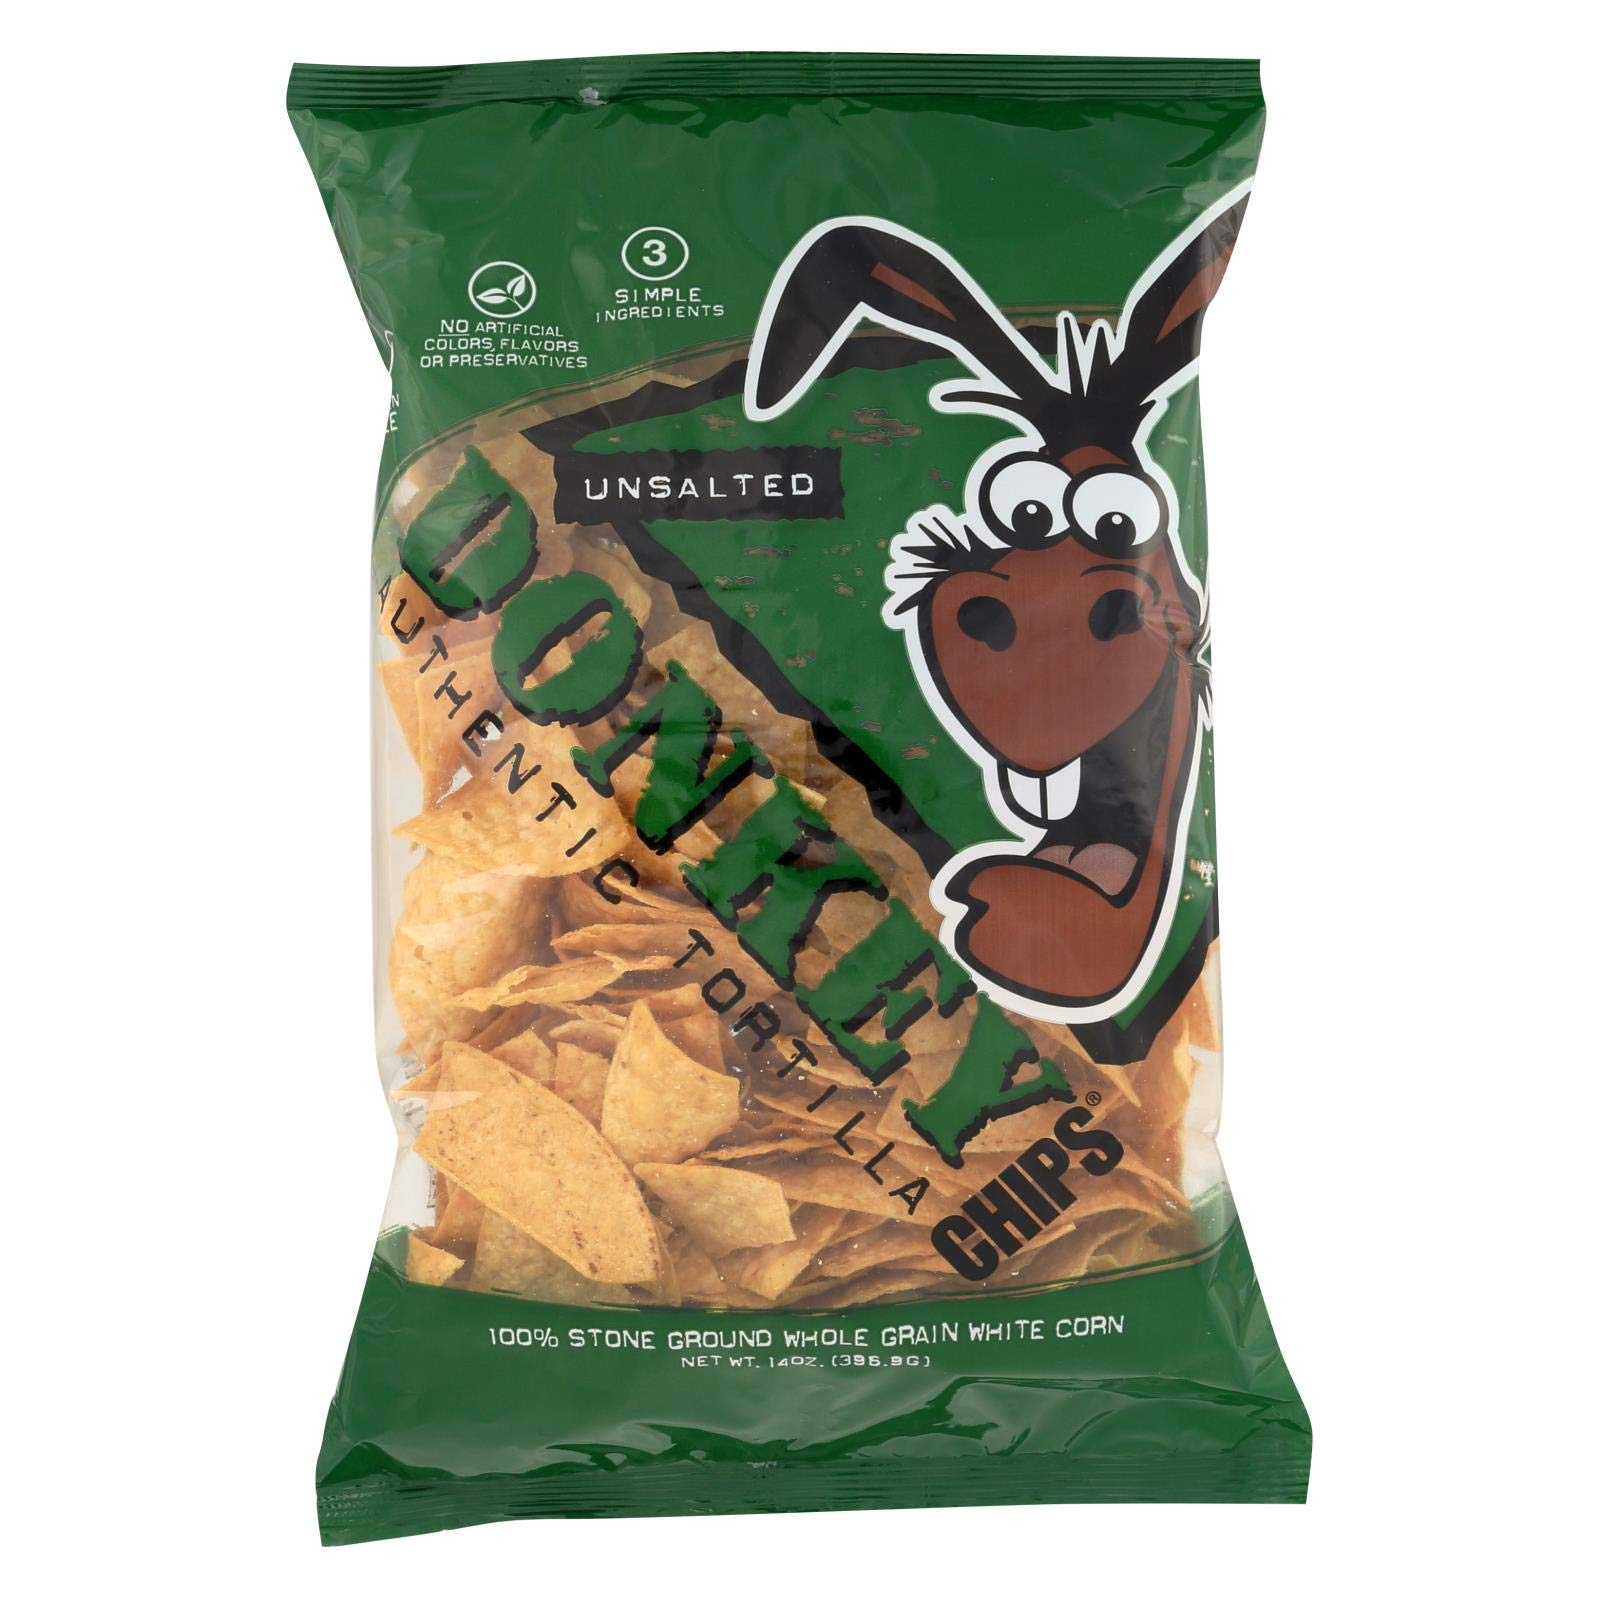 Donkey Authentic Tortilla Chips All Natural Unsalted, 14oz (Pack of 12) by Btg Brands, LLC.